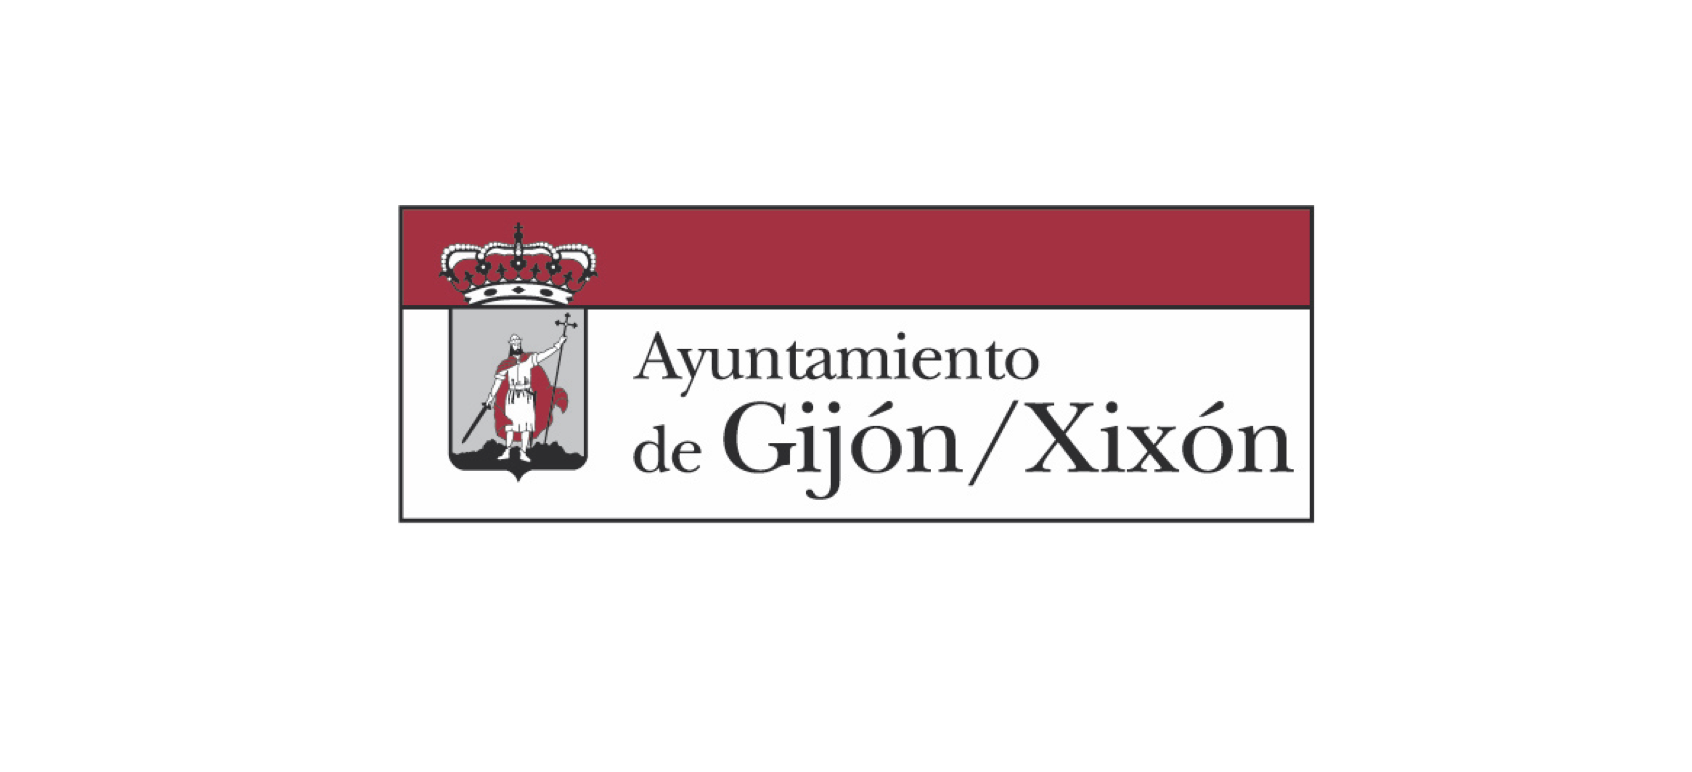 Gijón City Council